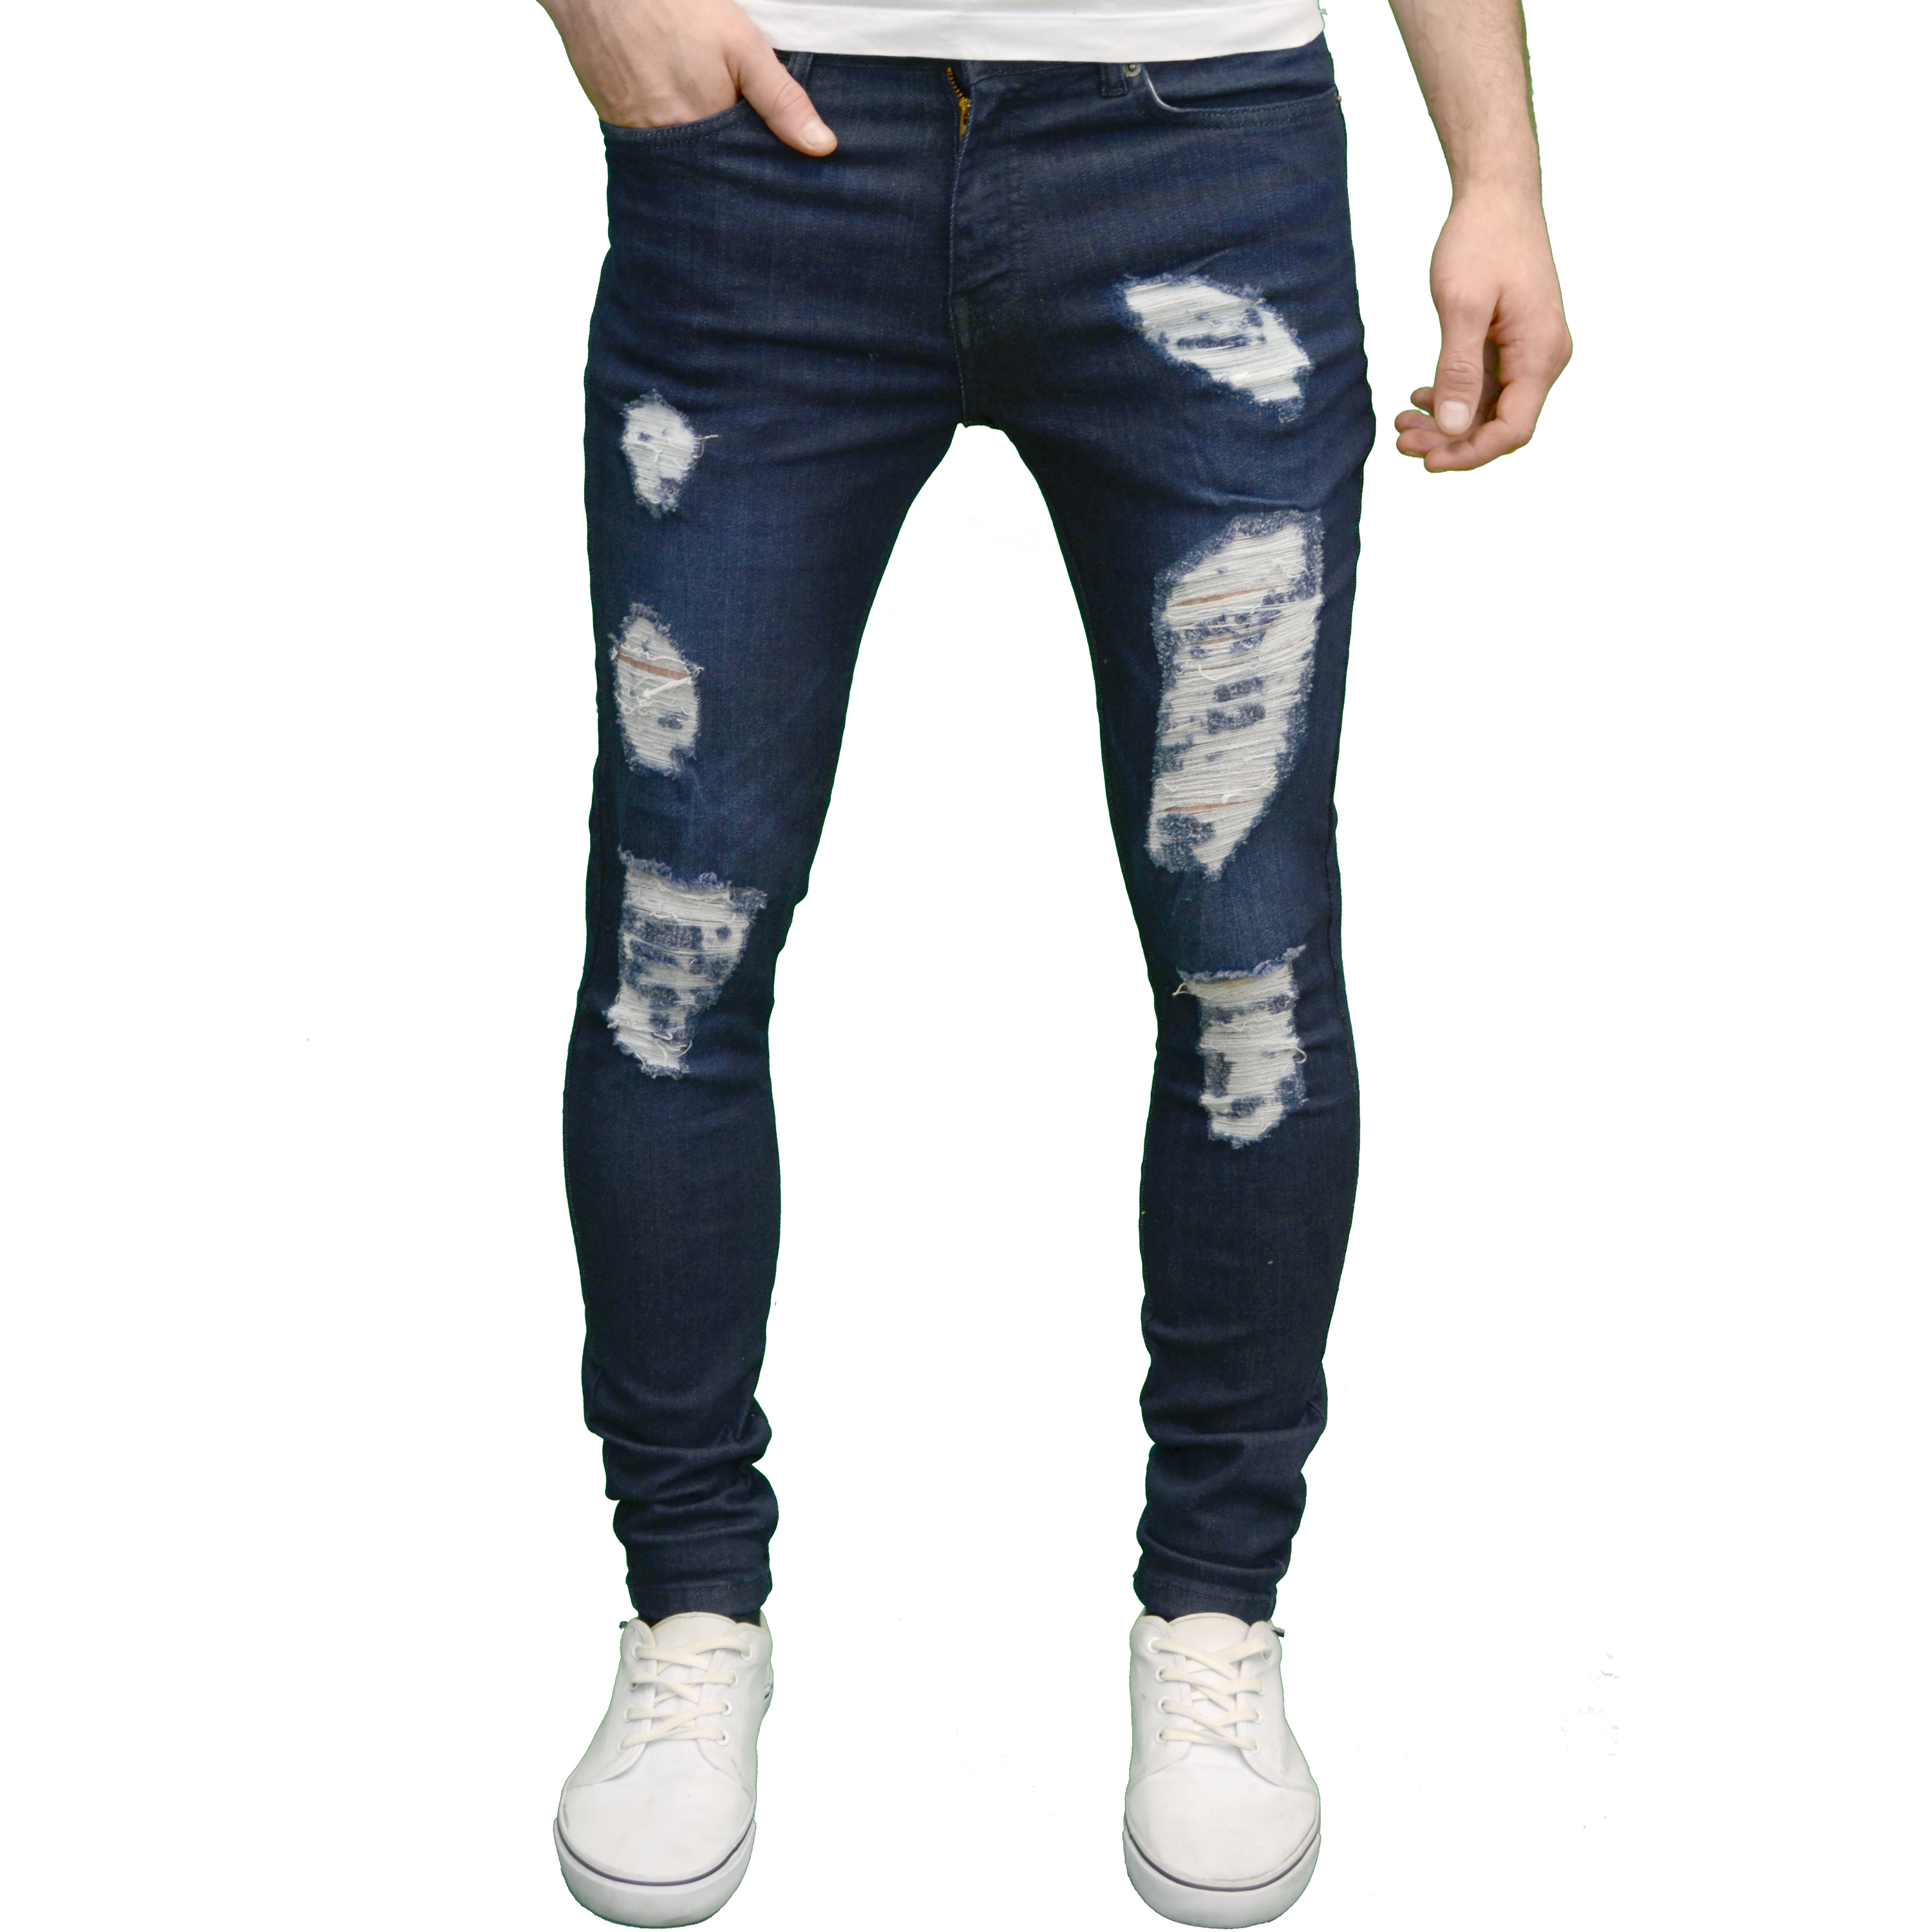 enzo herren designer marke stretch super skinny fit distressed zerrissene jeans ebay. Black Bedroom Furniture Sets. Home Design Ideas